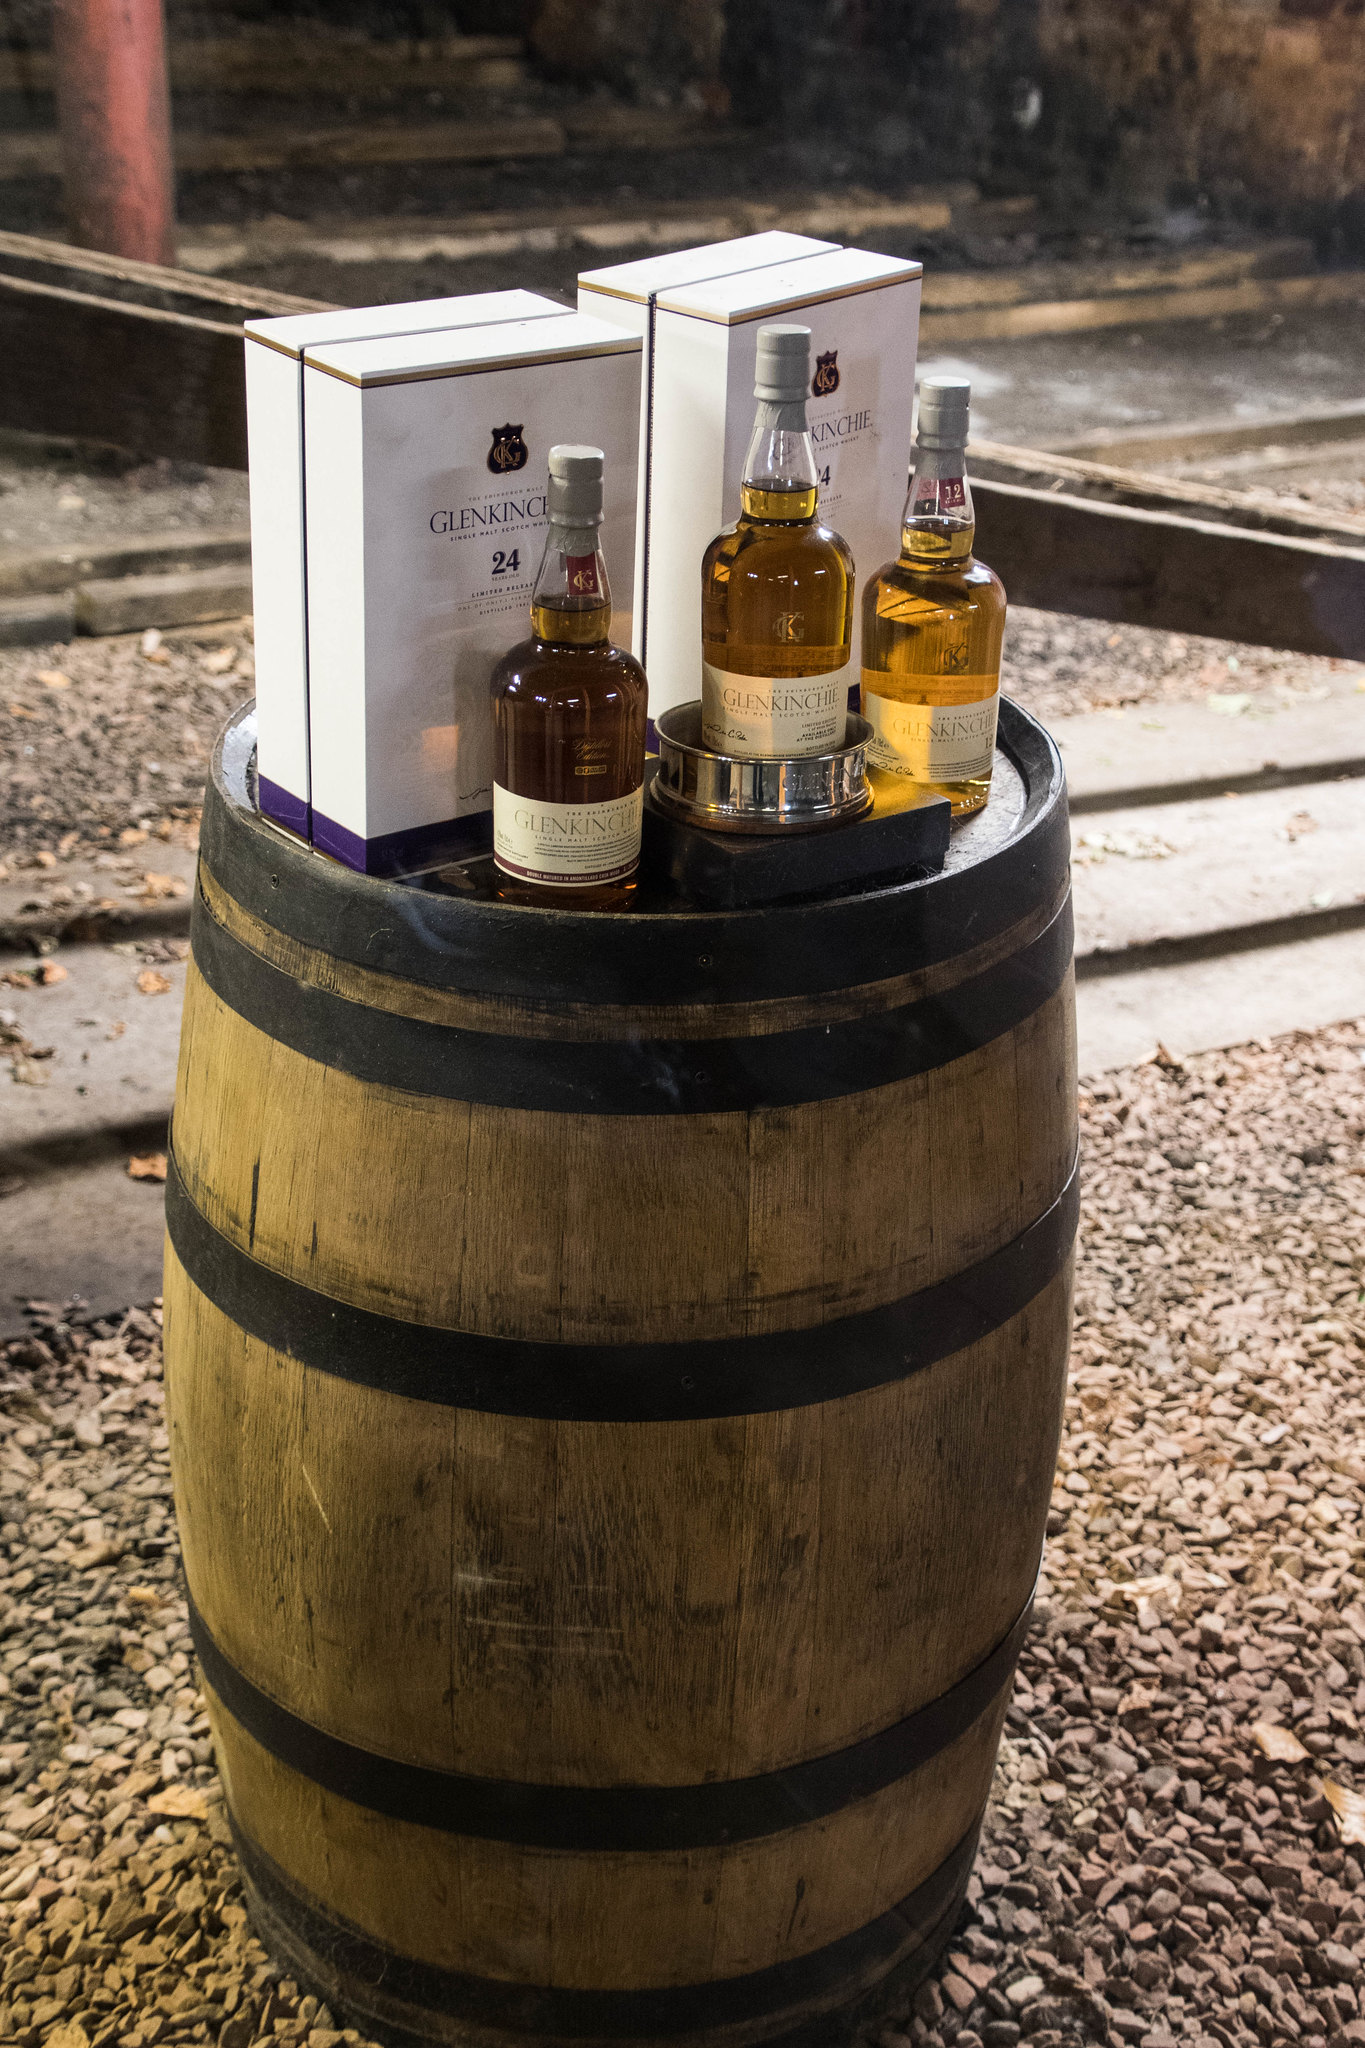 20180922-Scottland whisky barrel